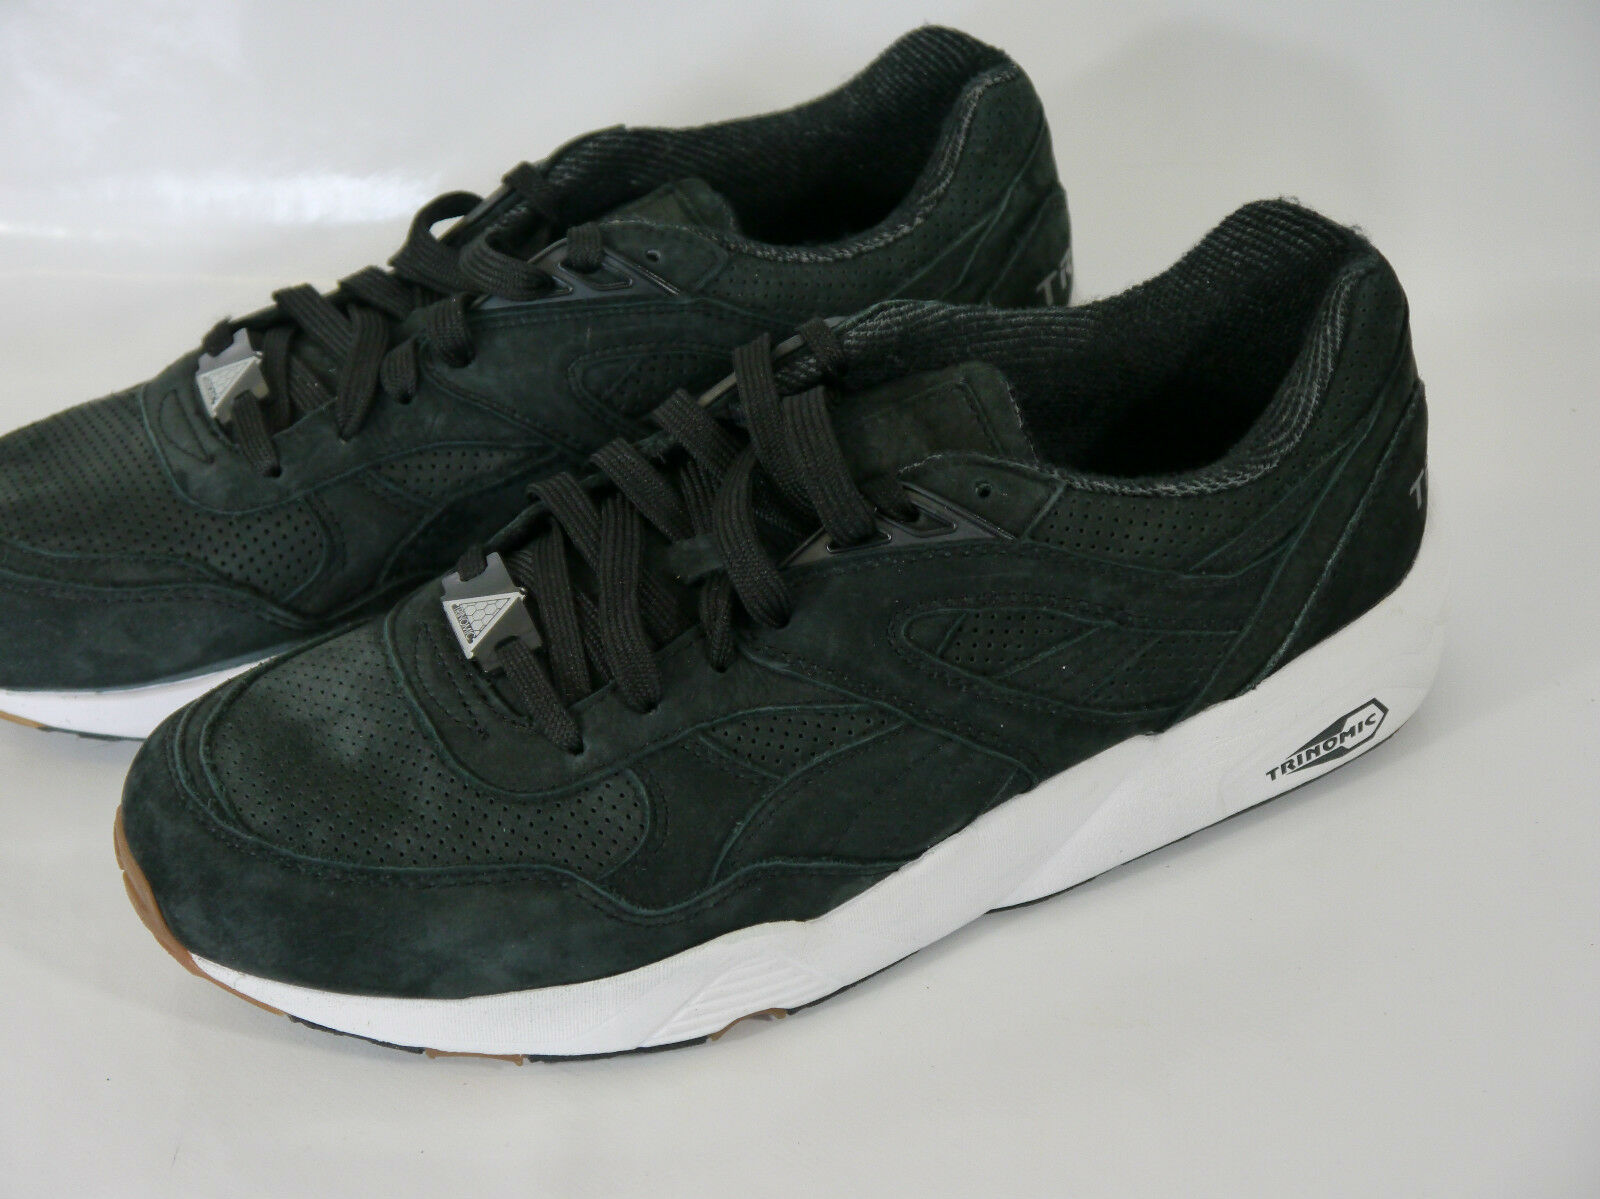 PUMA PERFORATED Noir LEATHER Hommes TRAINERS 8 EUR 42 US 9